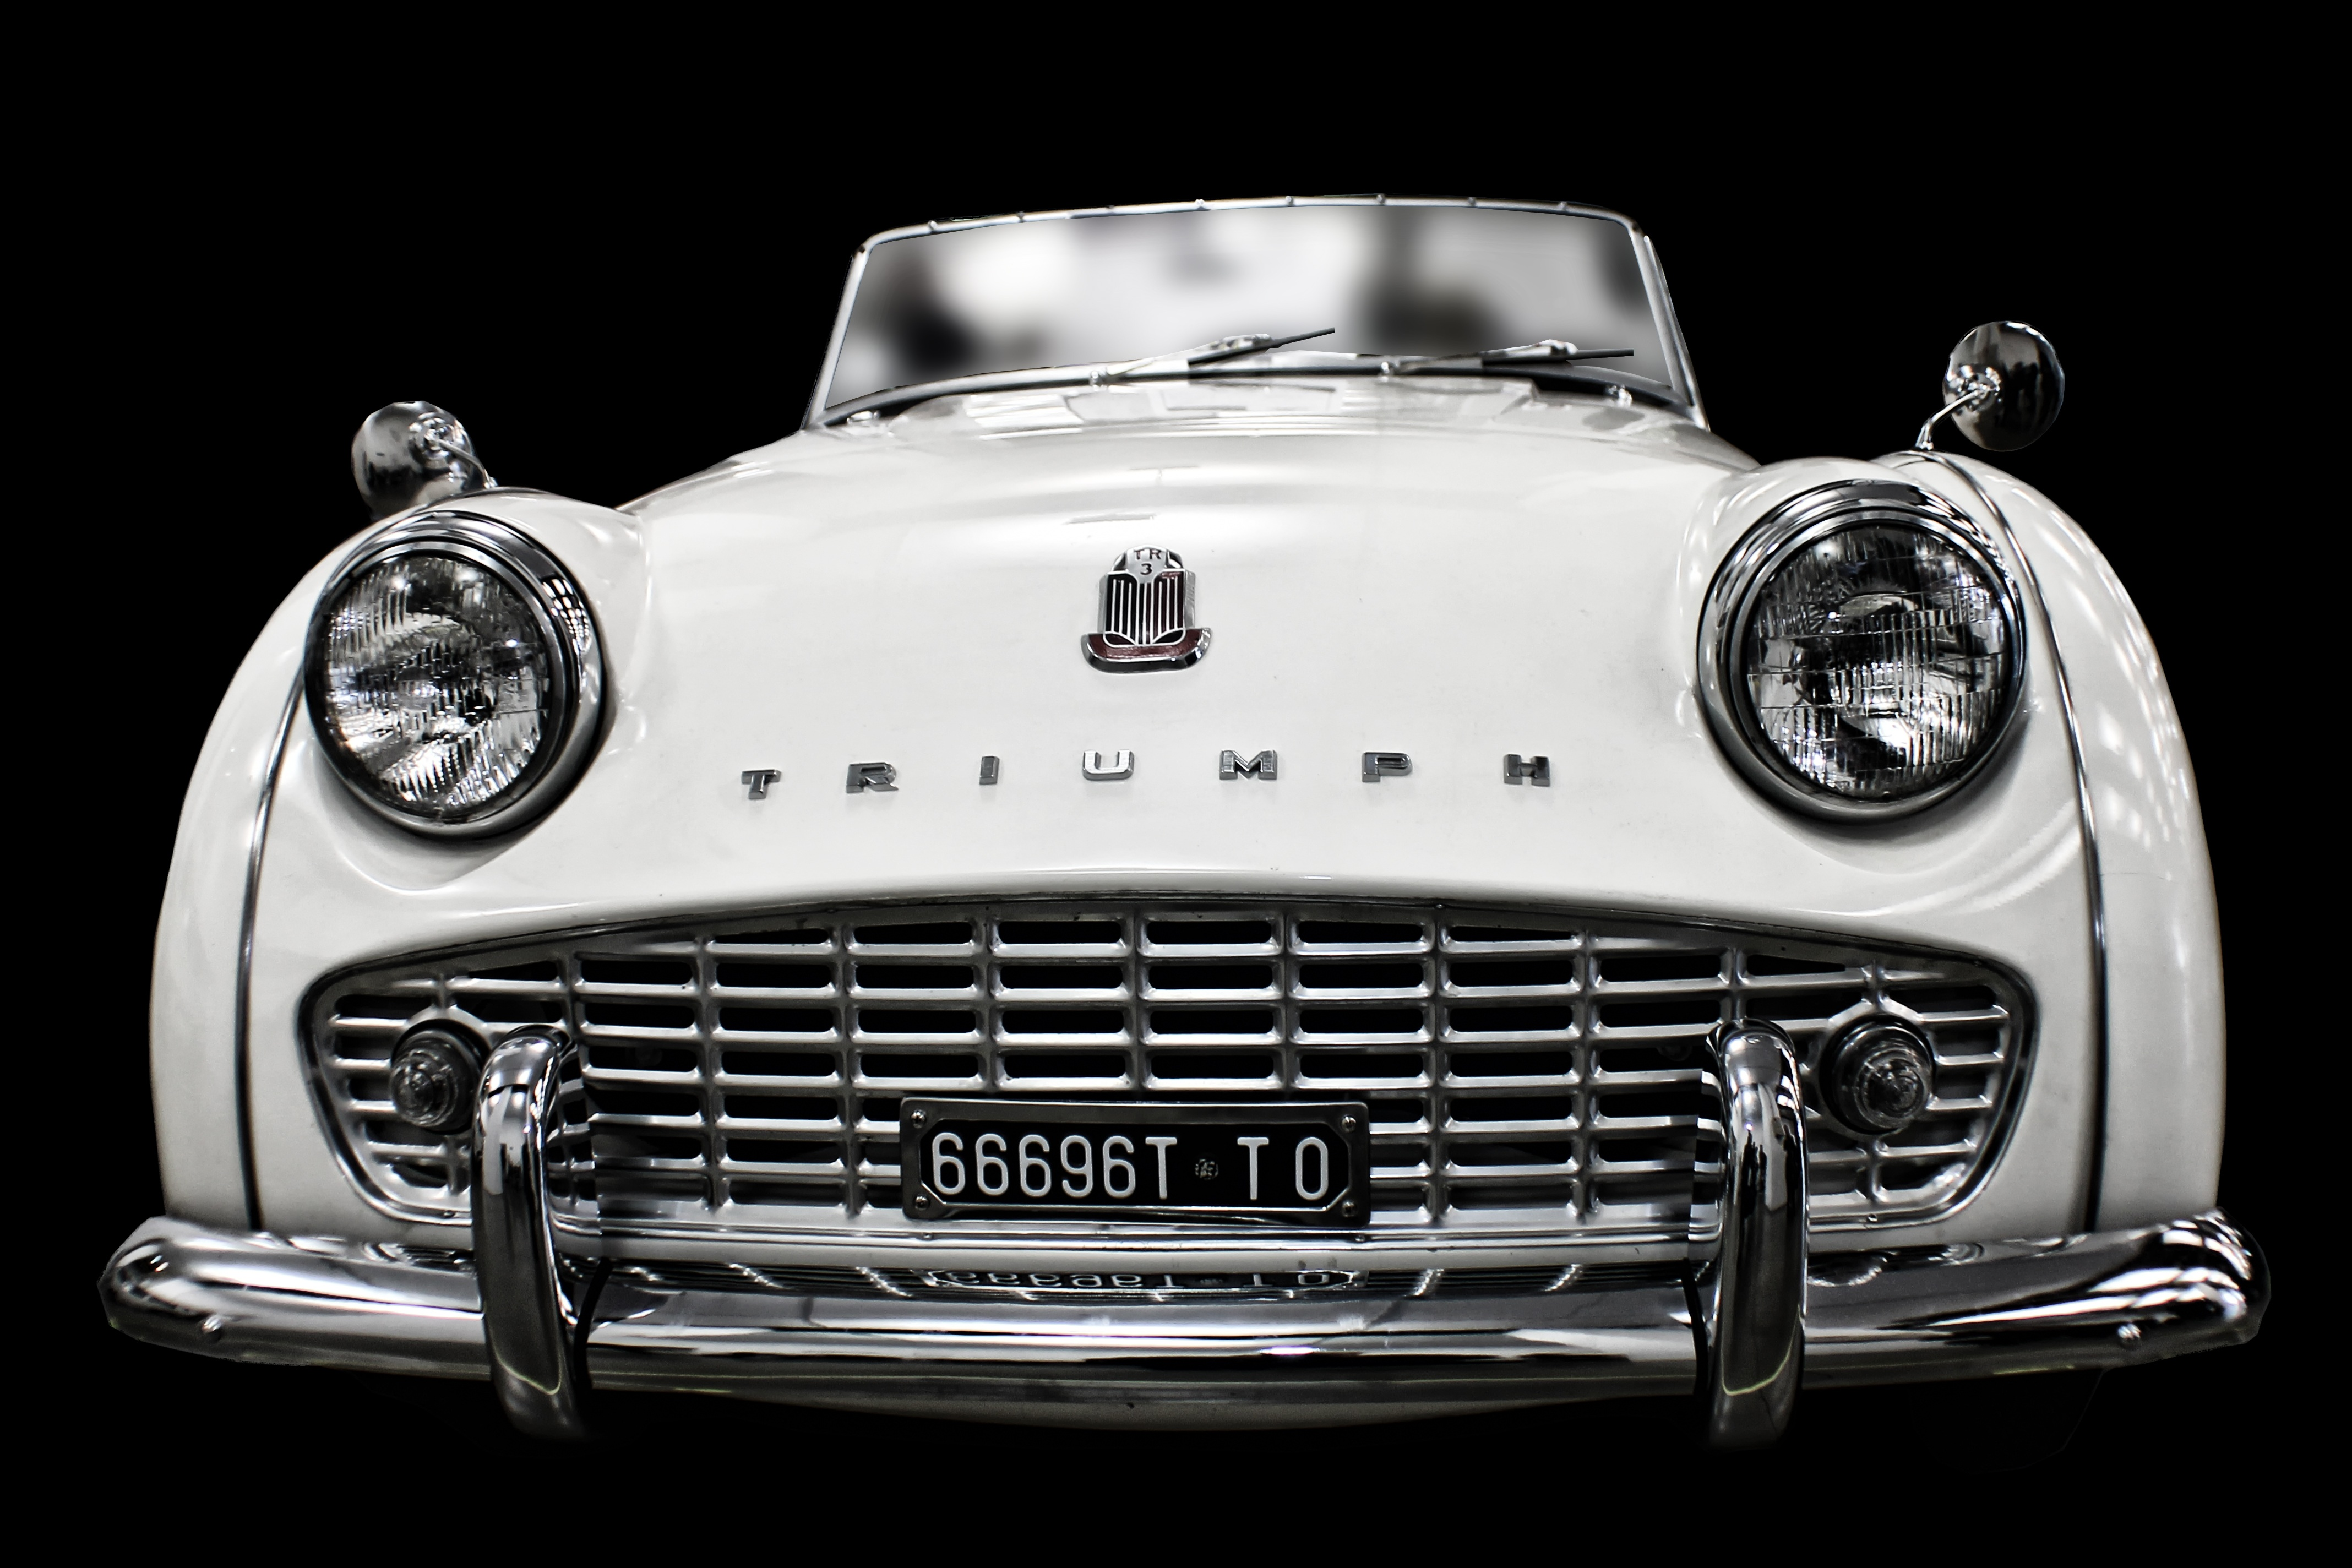 White Vintage Triump Sedan Free Stock Photo